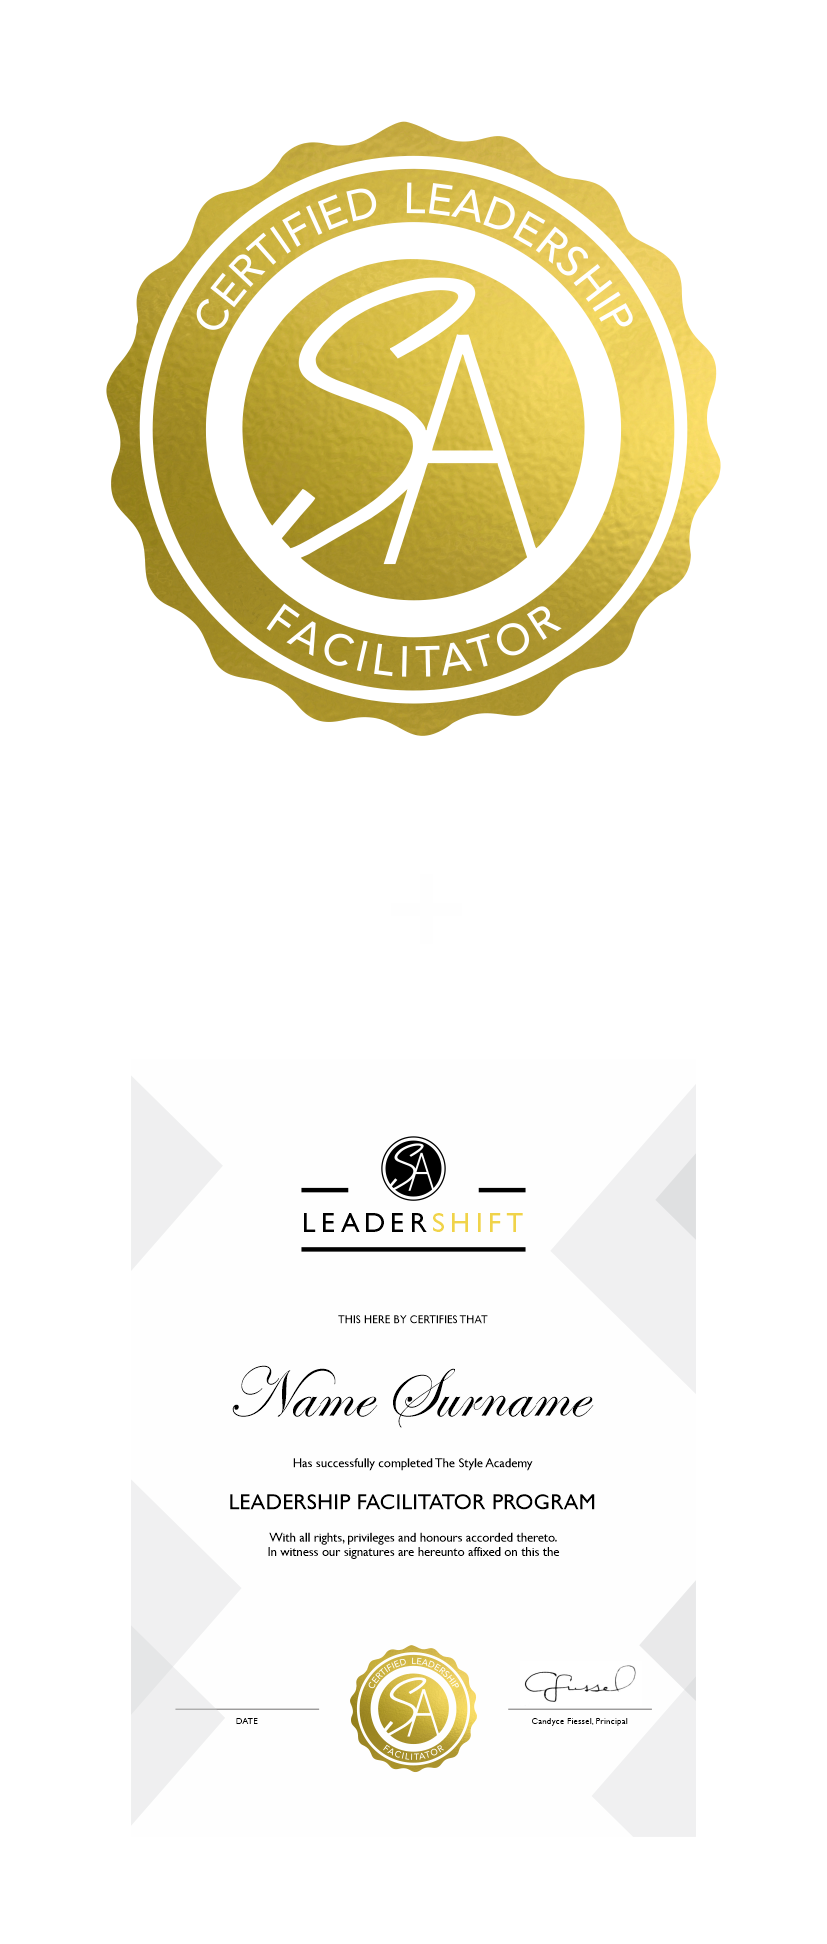 Certified Leadership Facilitator, Leader Shift Program - The Style Academy, Regina, Saskatchewan, Canada